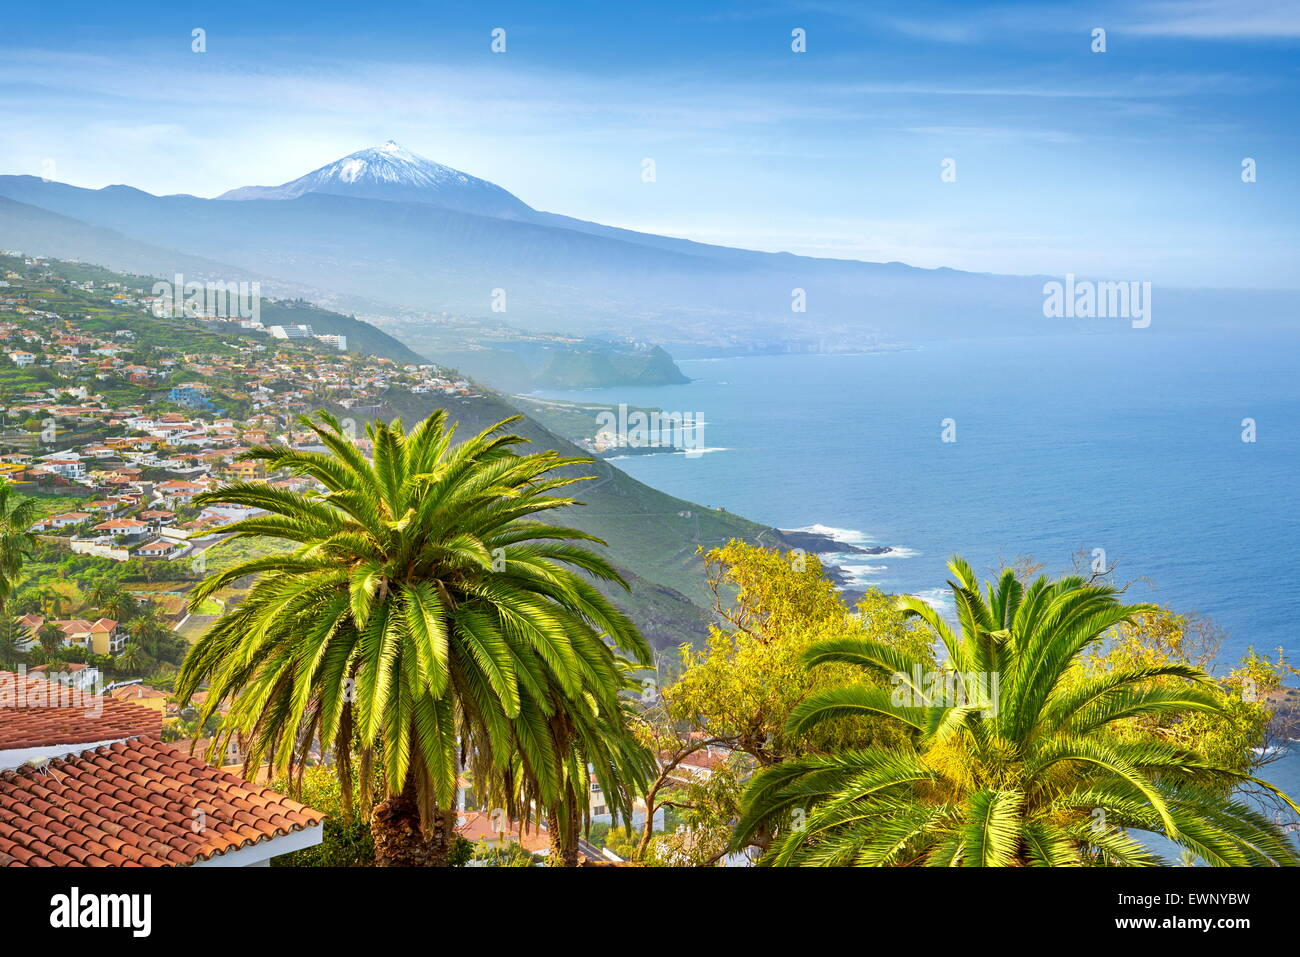 North coast of Tenerife, Canary Islands, Spain - Stock Image